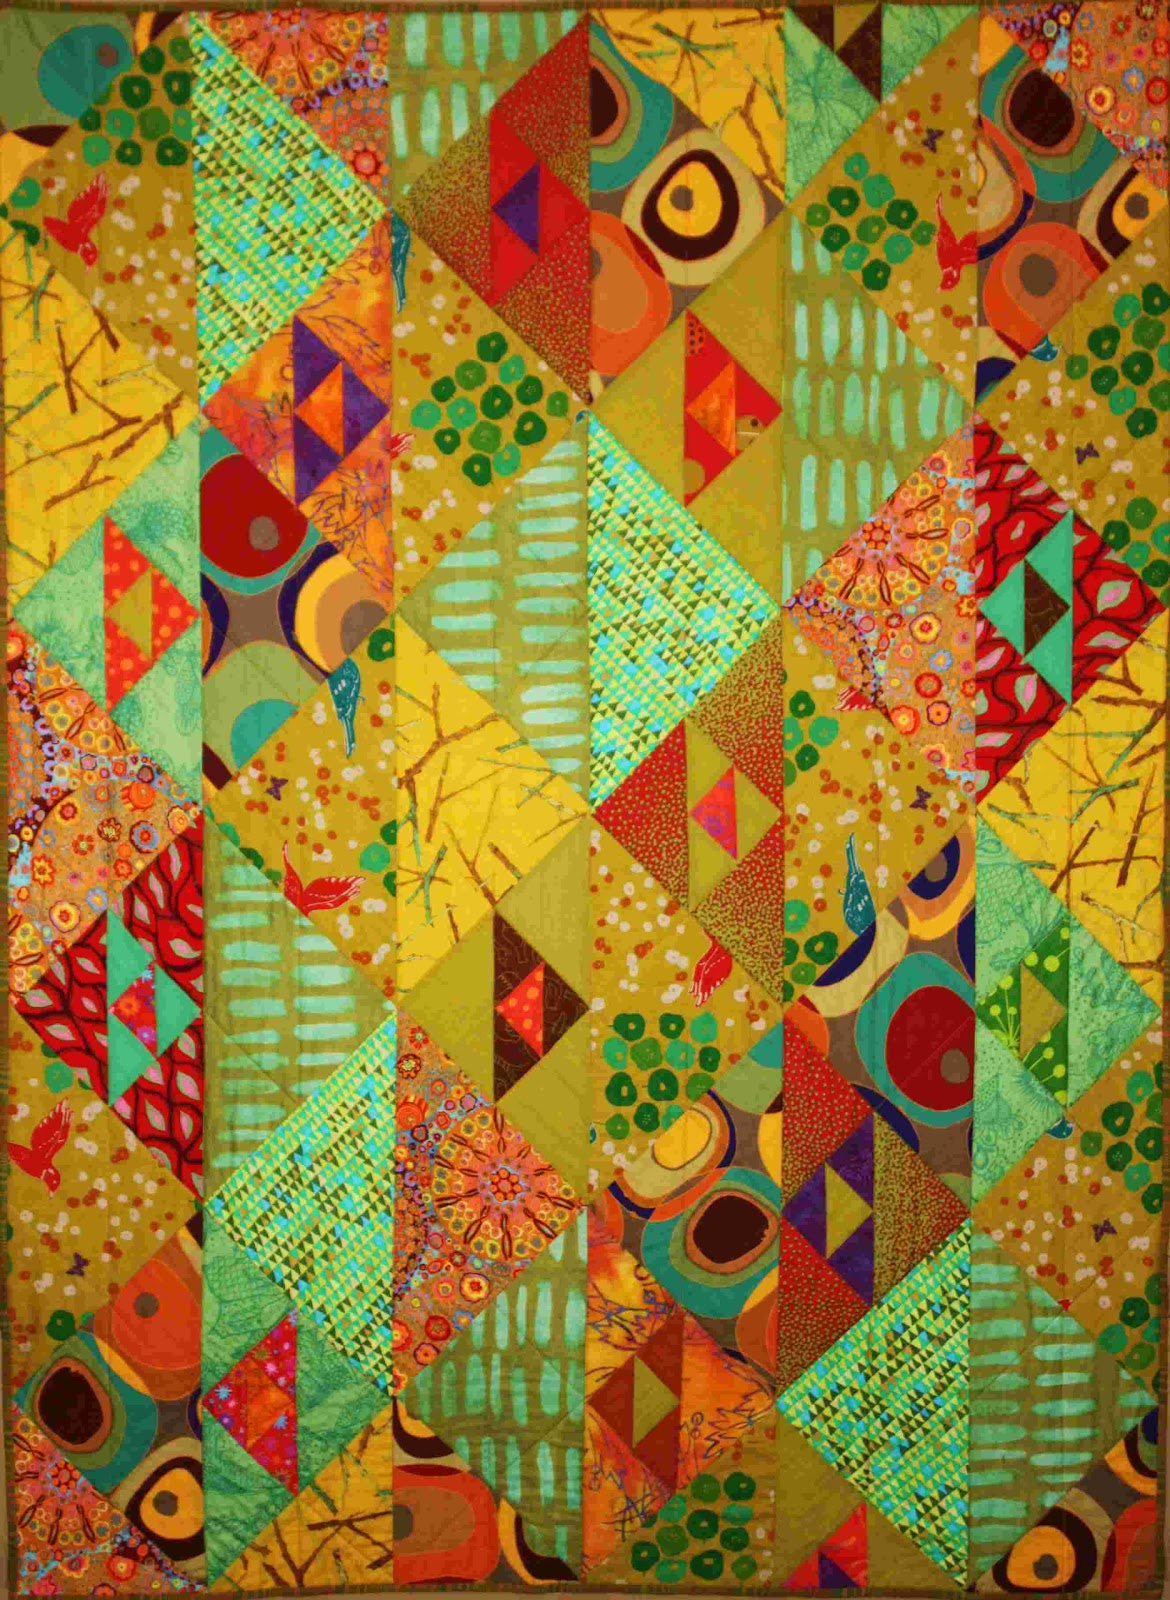 Quilt Inspiration: Simple shapes in fabulous fabrics : jenny bowker quilts - Adamdwight.com